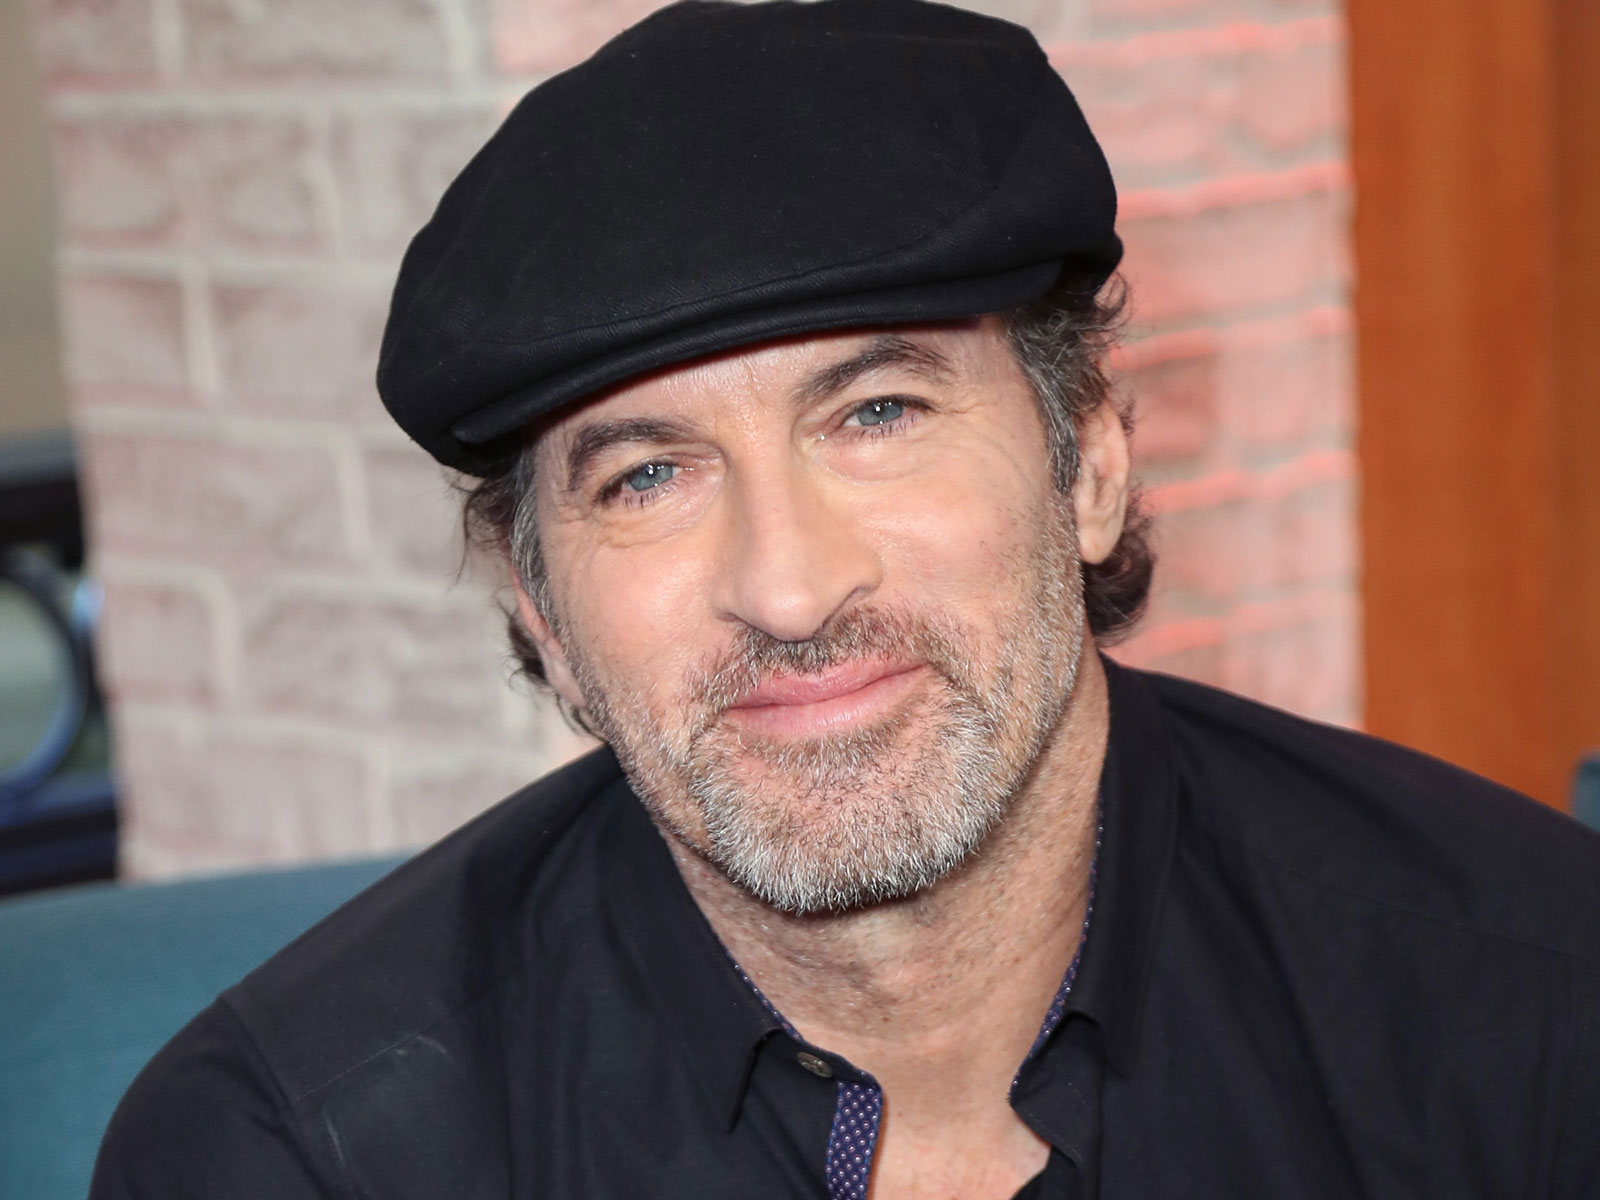 Scott Patterson, star of Gilmore Girls